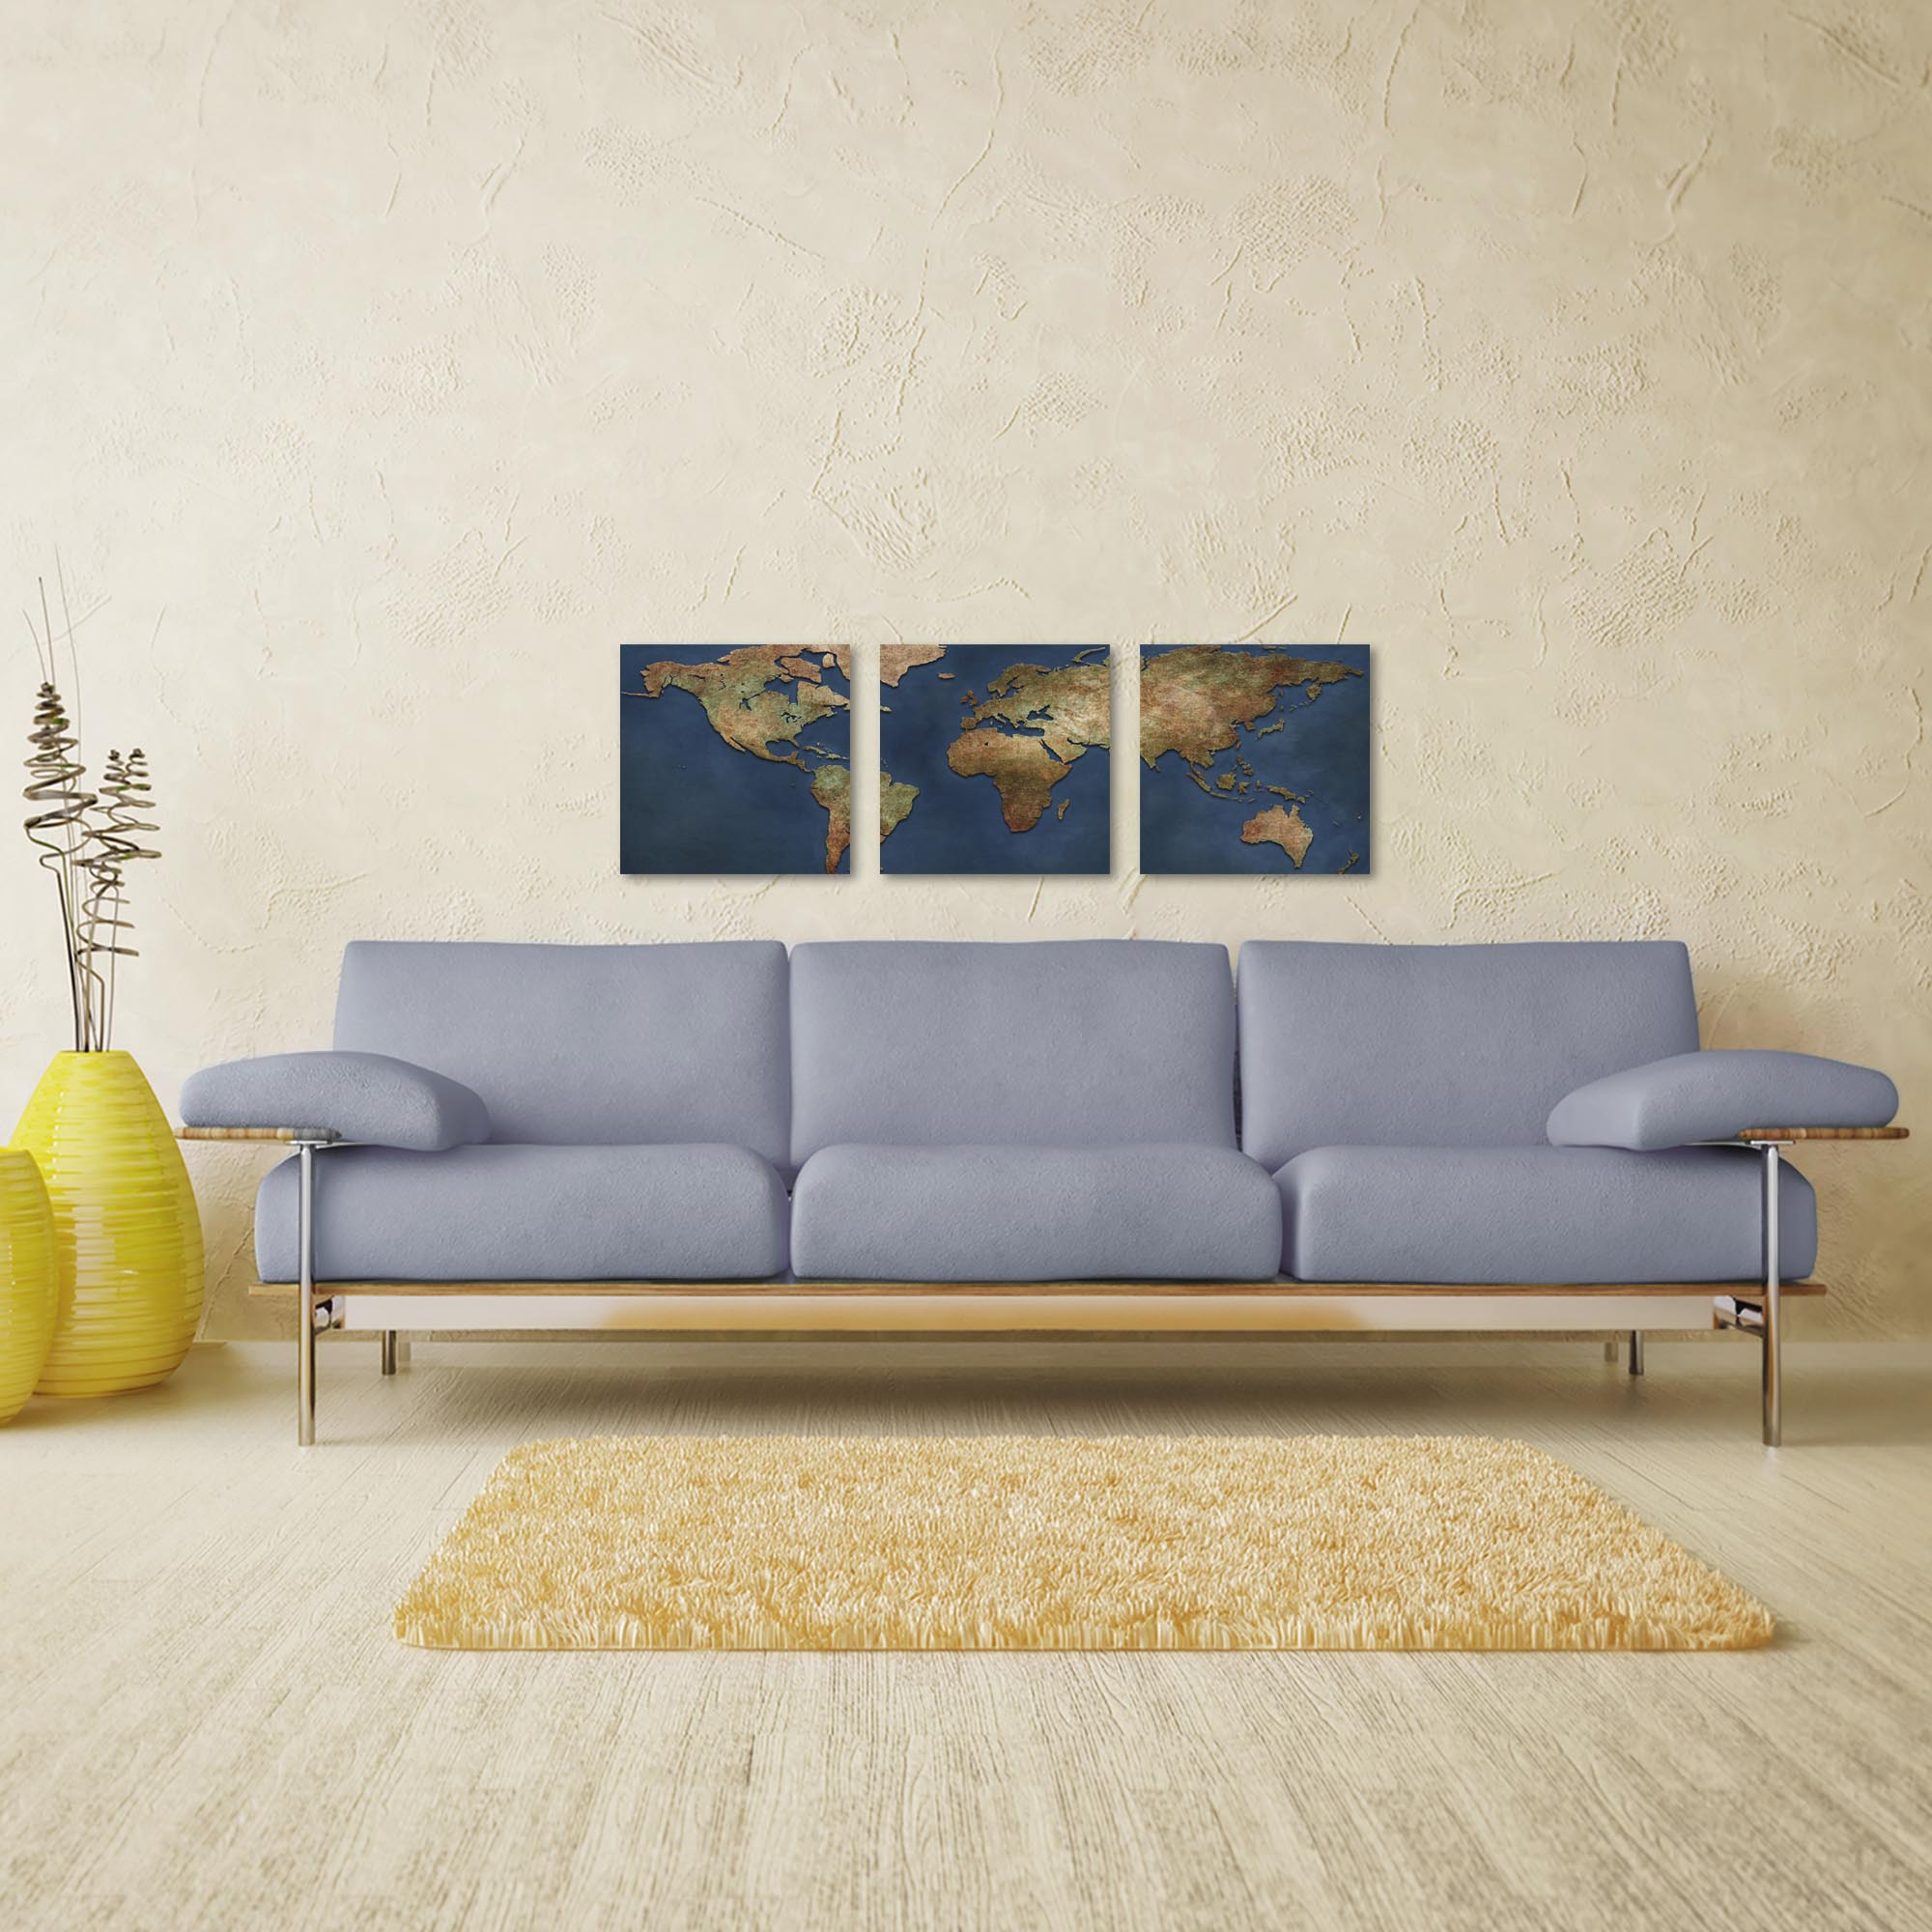 1800s World Map Triptych 38x12in. Metal or Acrylic Colonial Decor - Lifestyle View